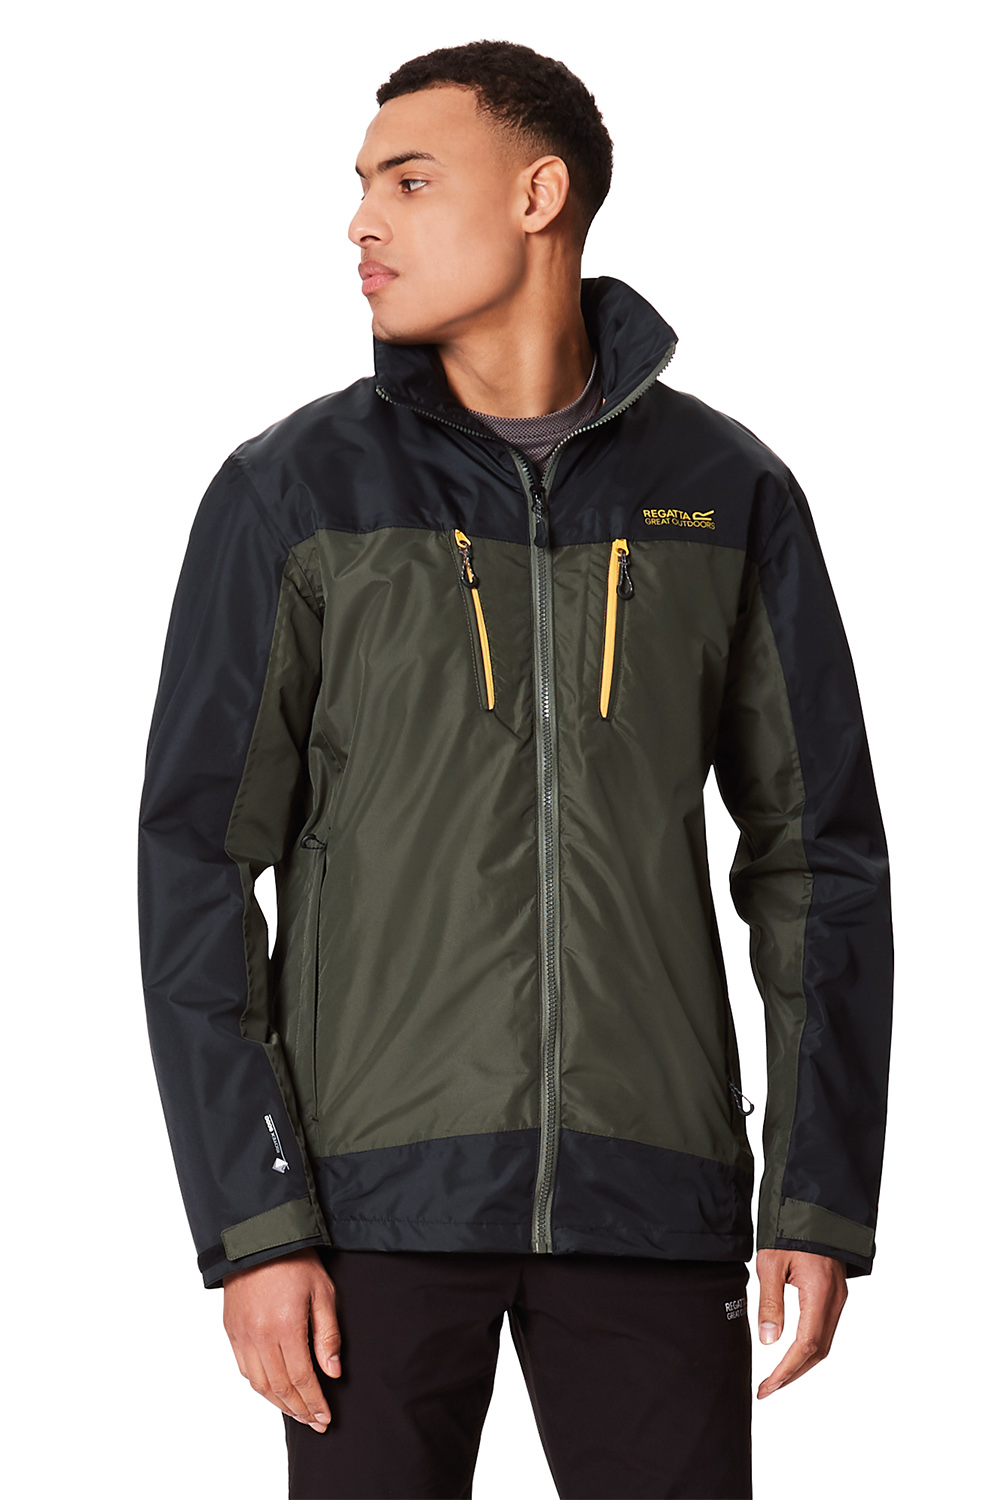 Regatta-Mens-Calderdale-II-Jacket-Waterproof-Breathable-Isotex-5000-Hooded-Coat thumbnail 22